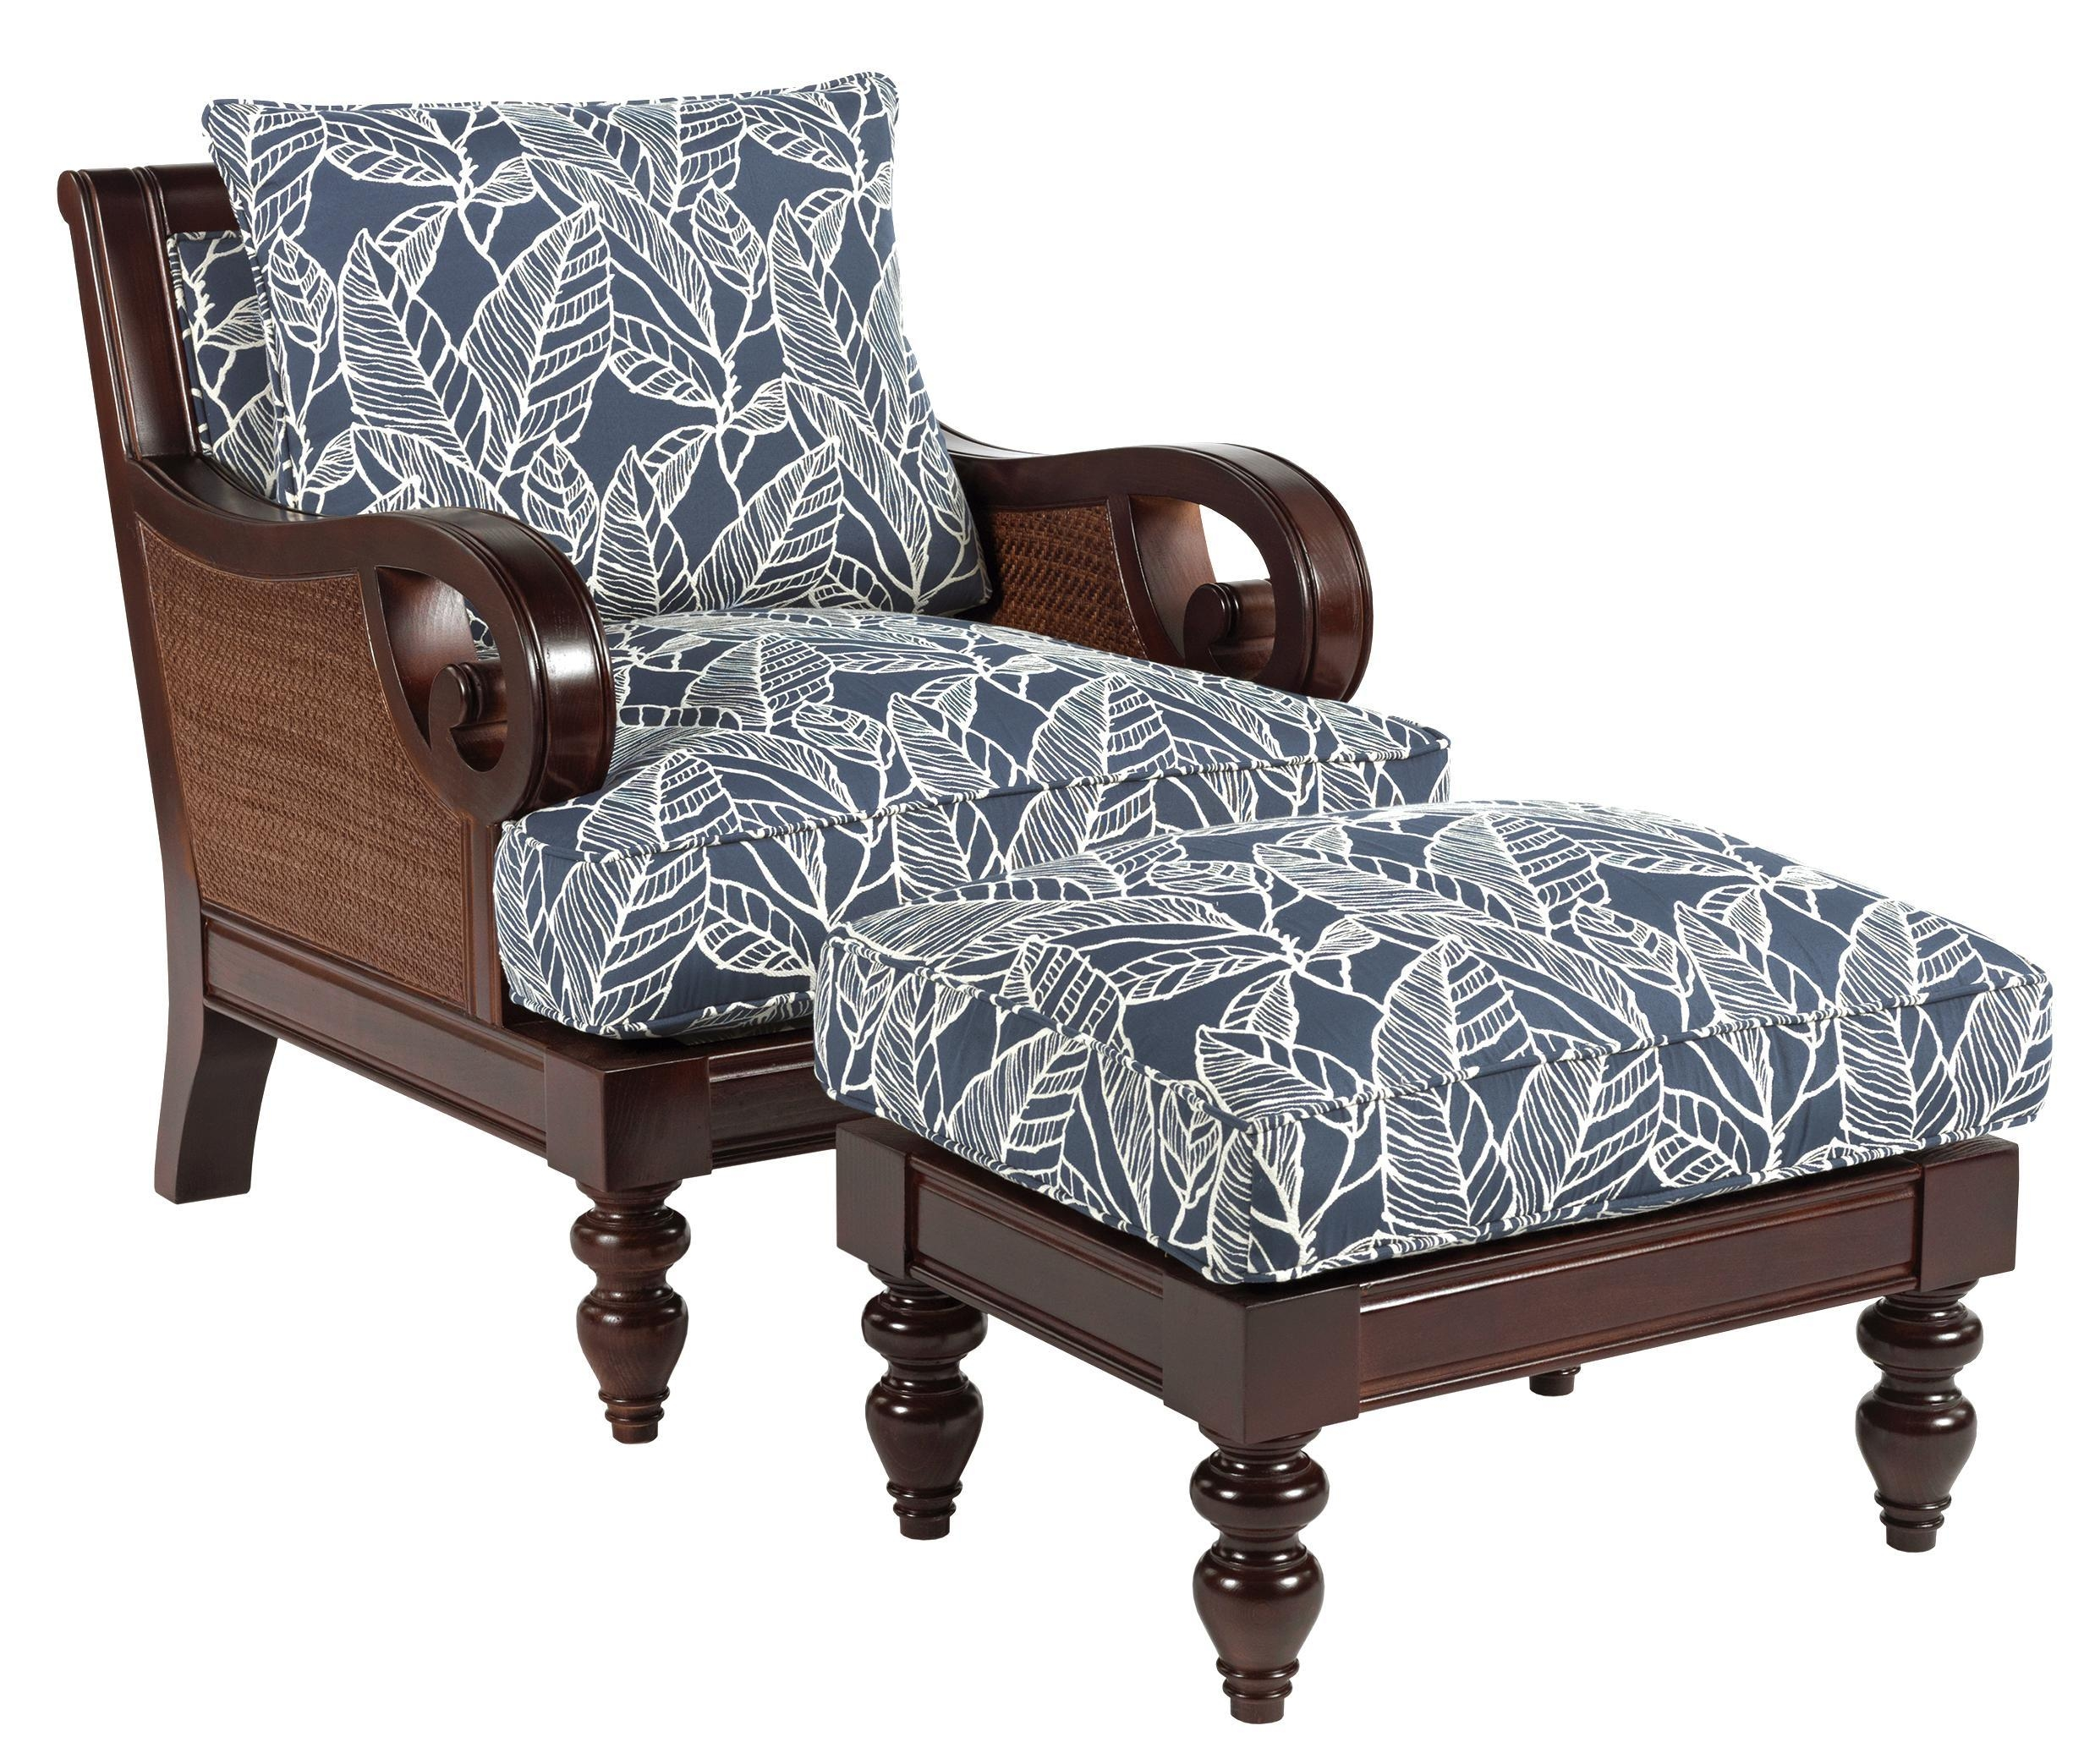 Sam Moore Tailynn Tropical Sofa With Exposed Wood And Scrolled With Sam Moore Sofas (Image 16 of 20)